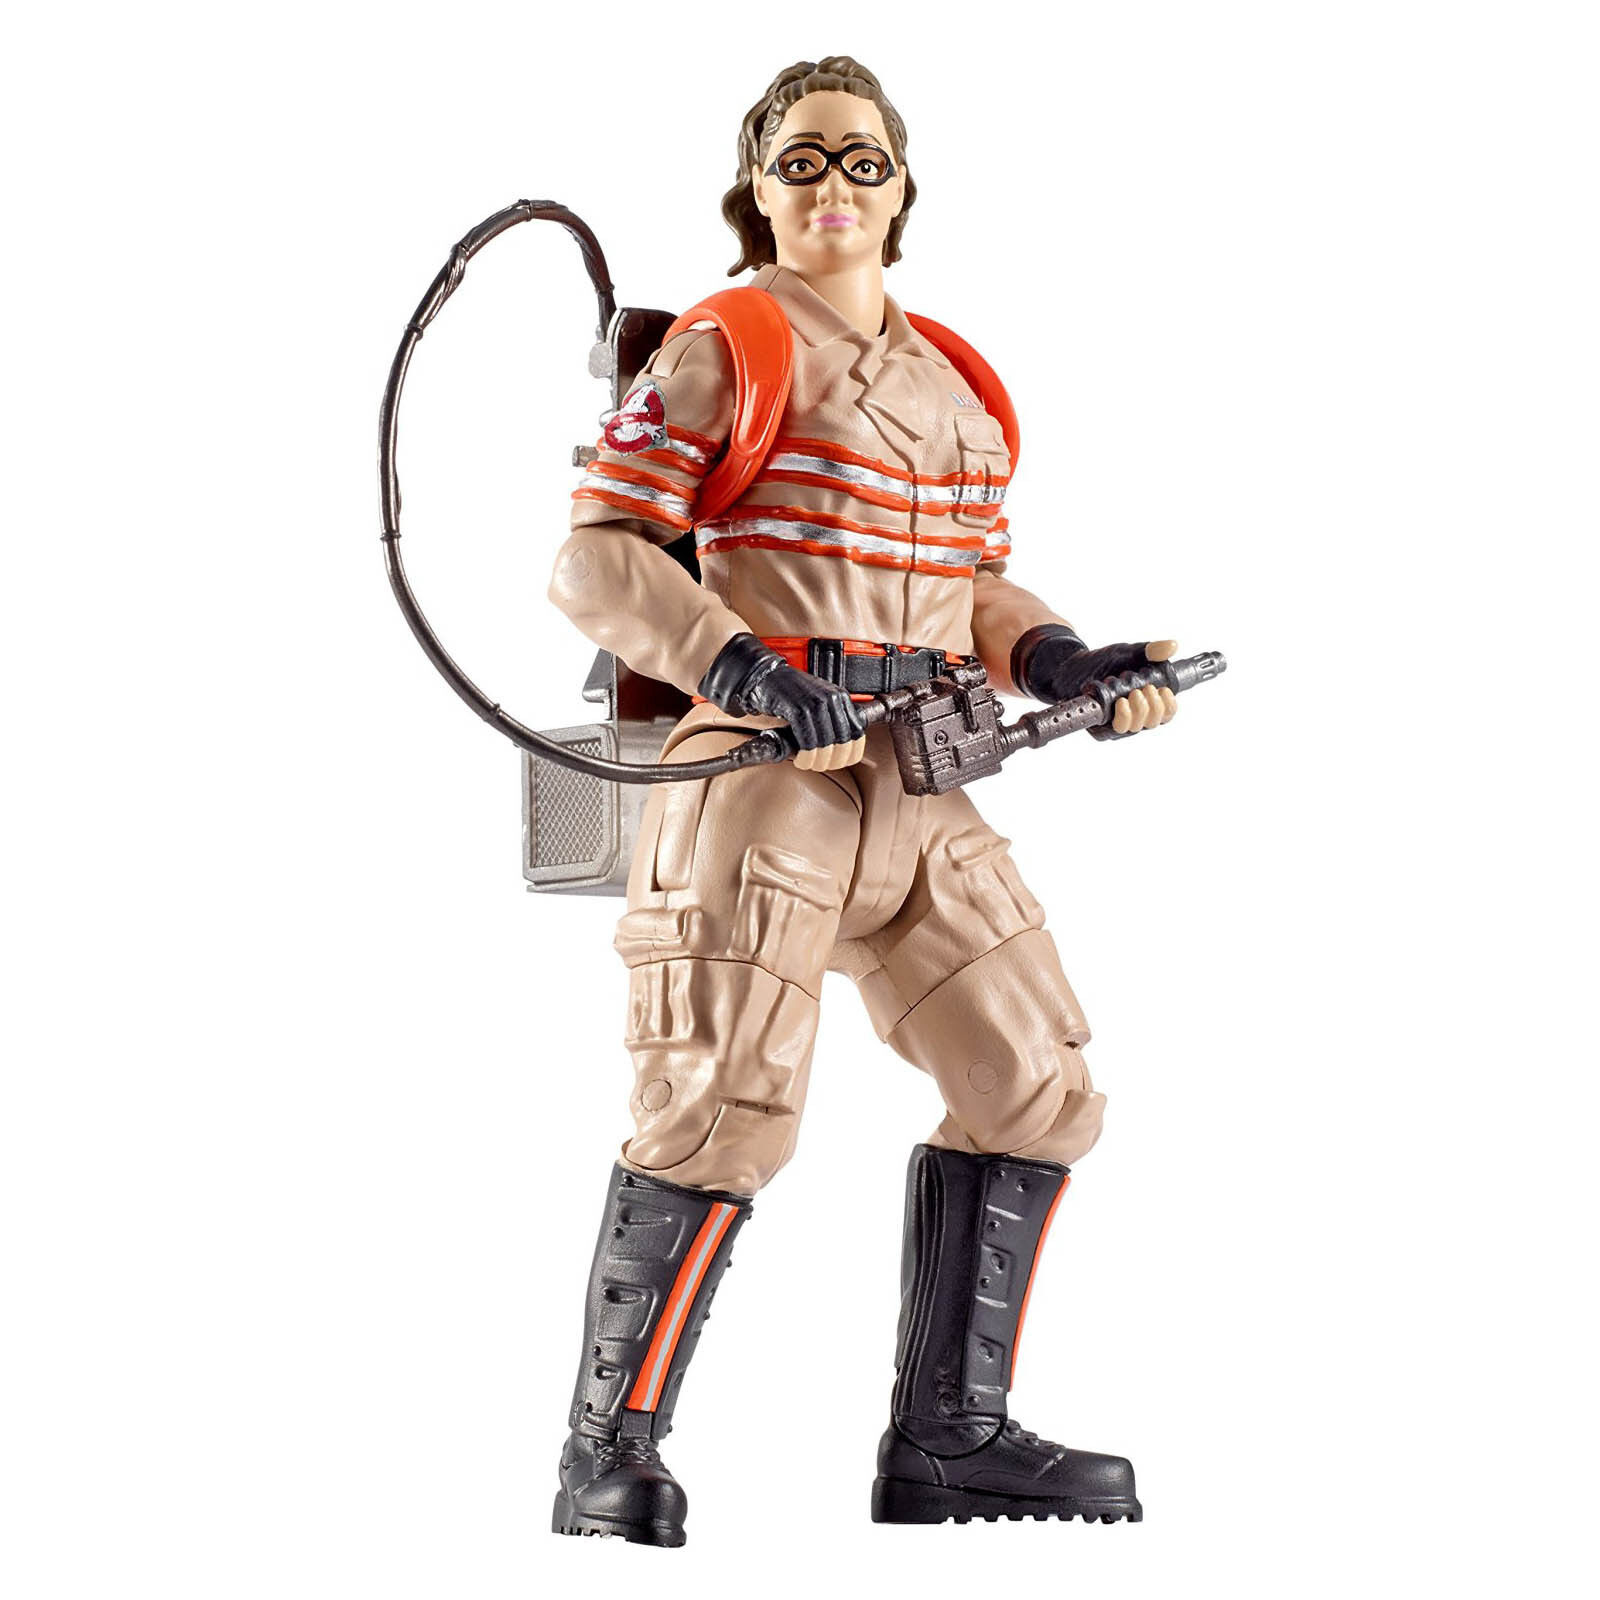 Ghostbusters 6 inch Action Figure - Abby Yates